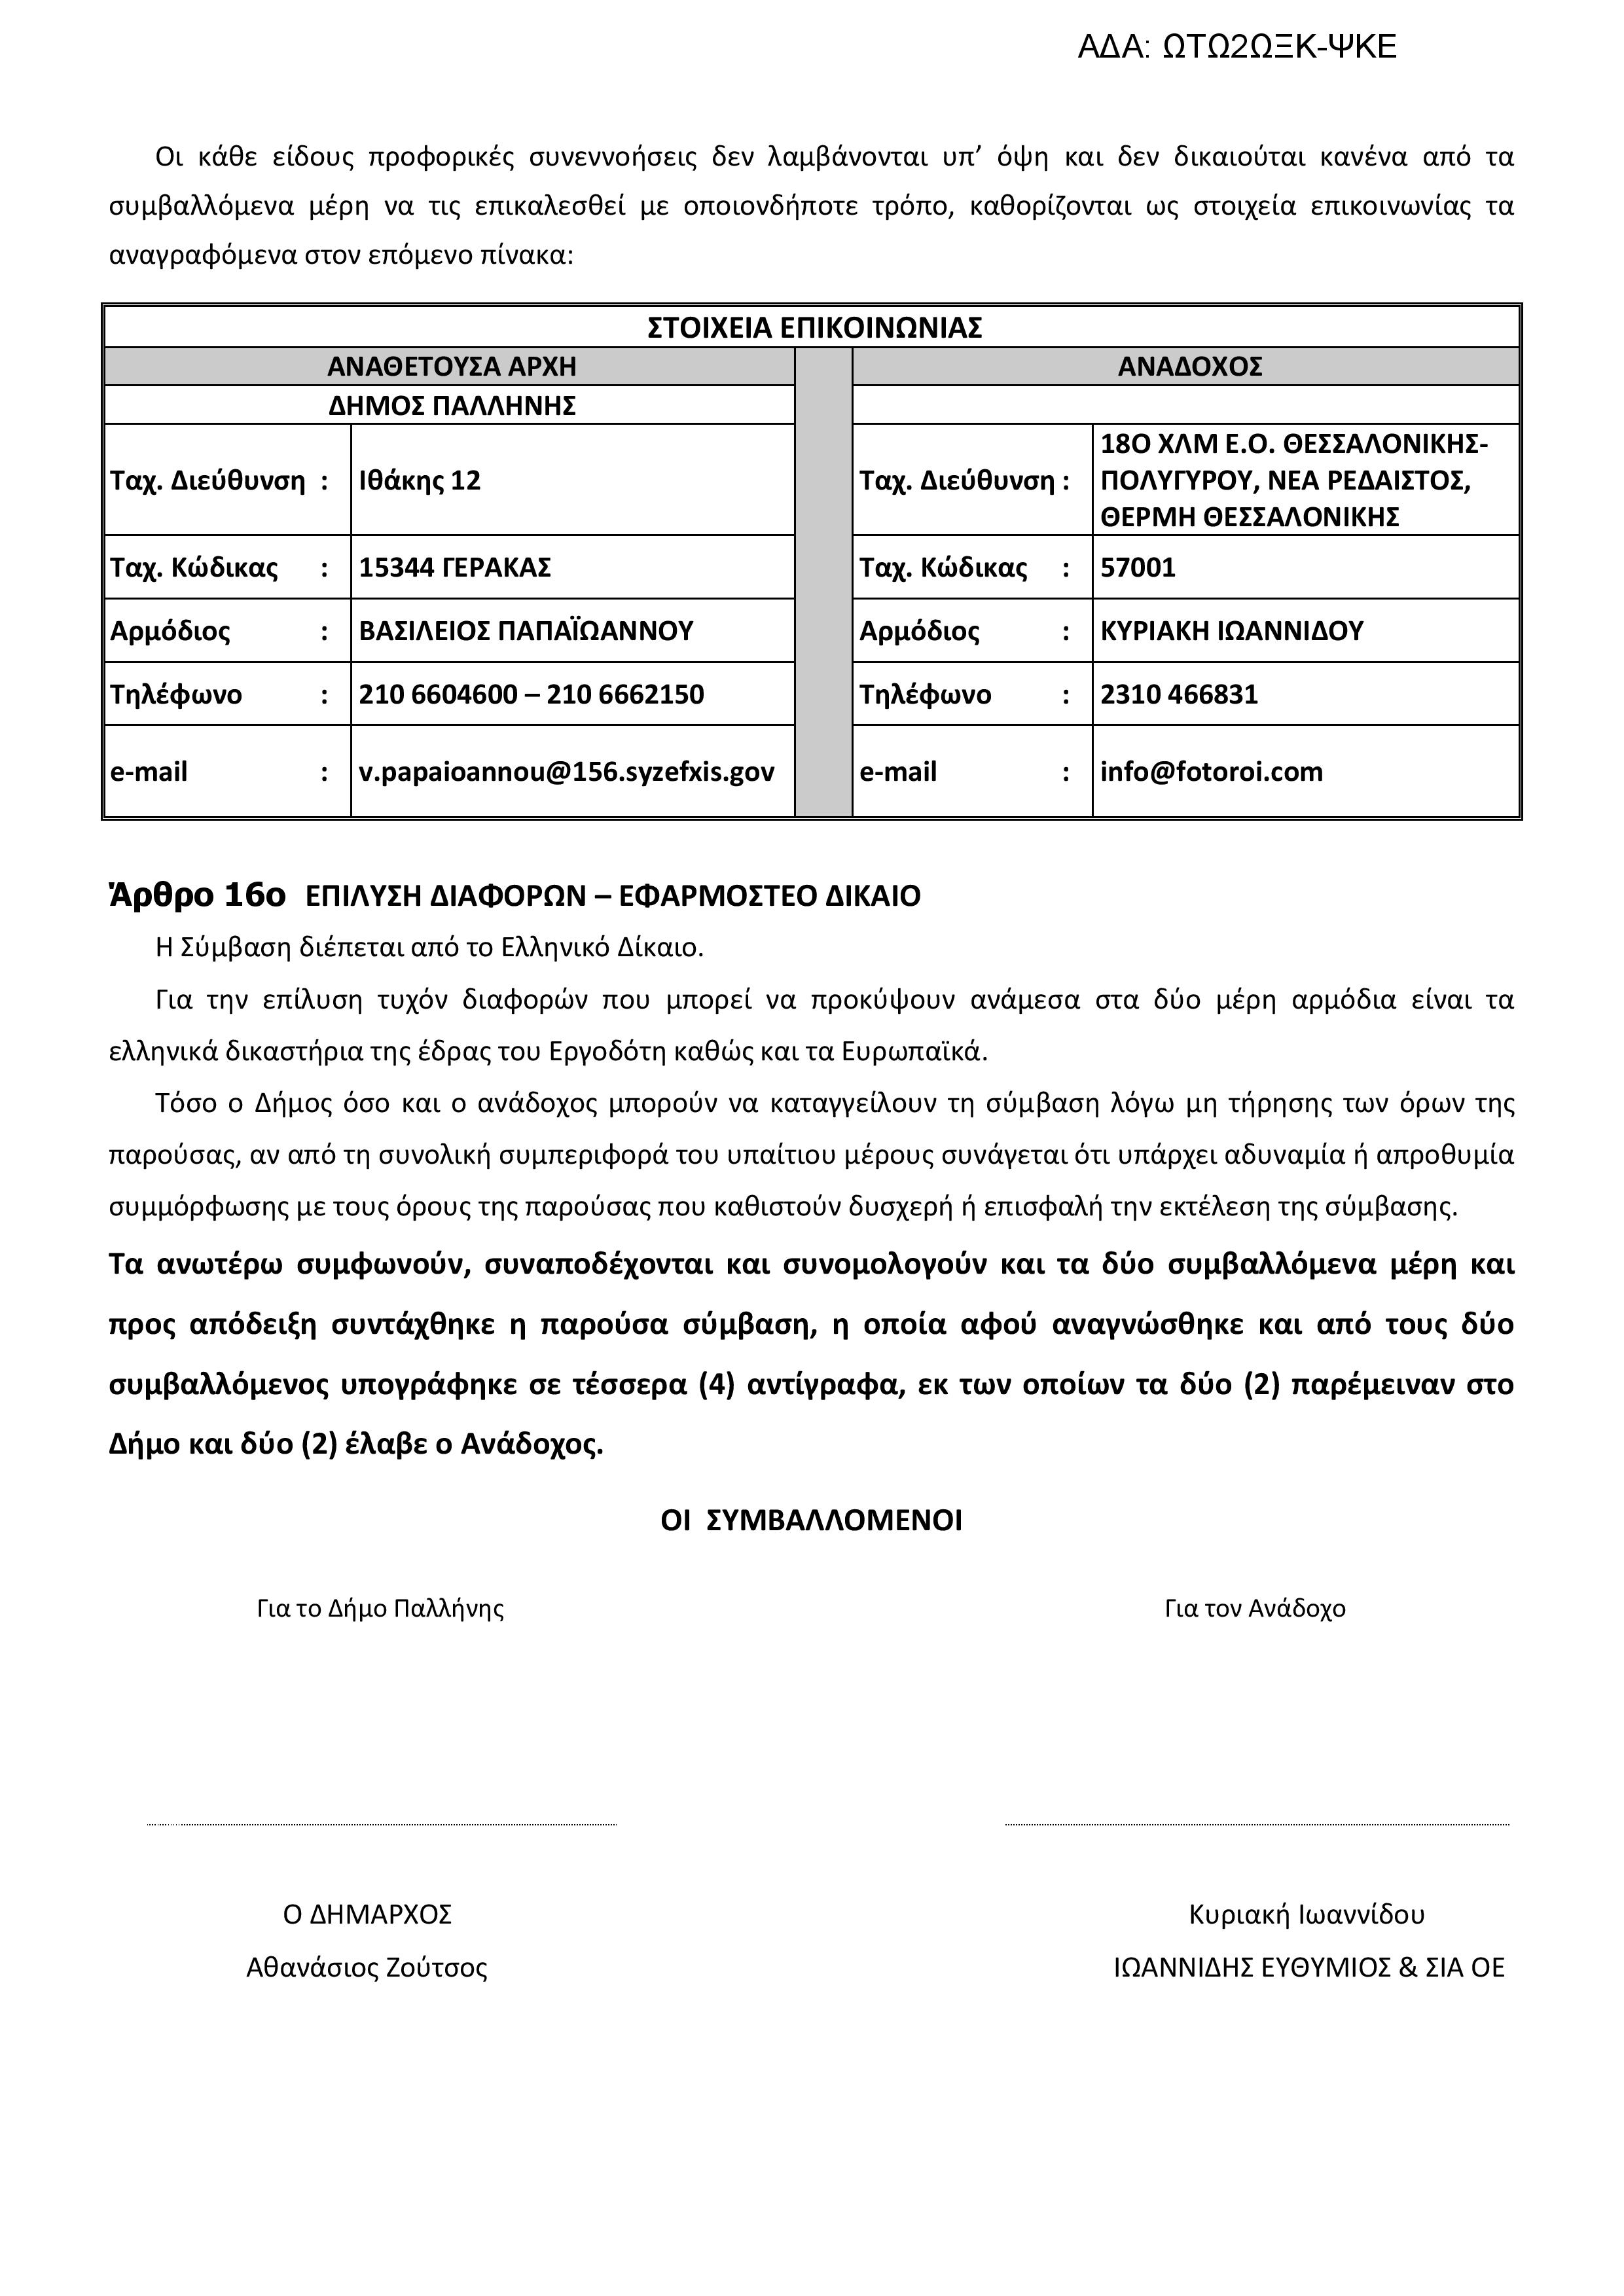 Document-page-011